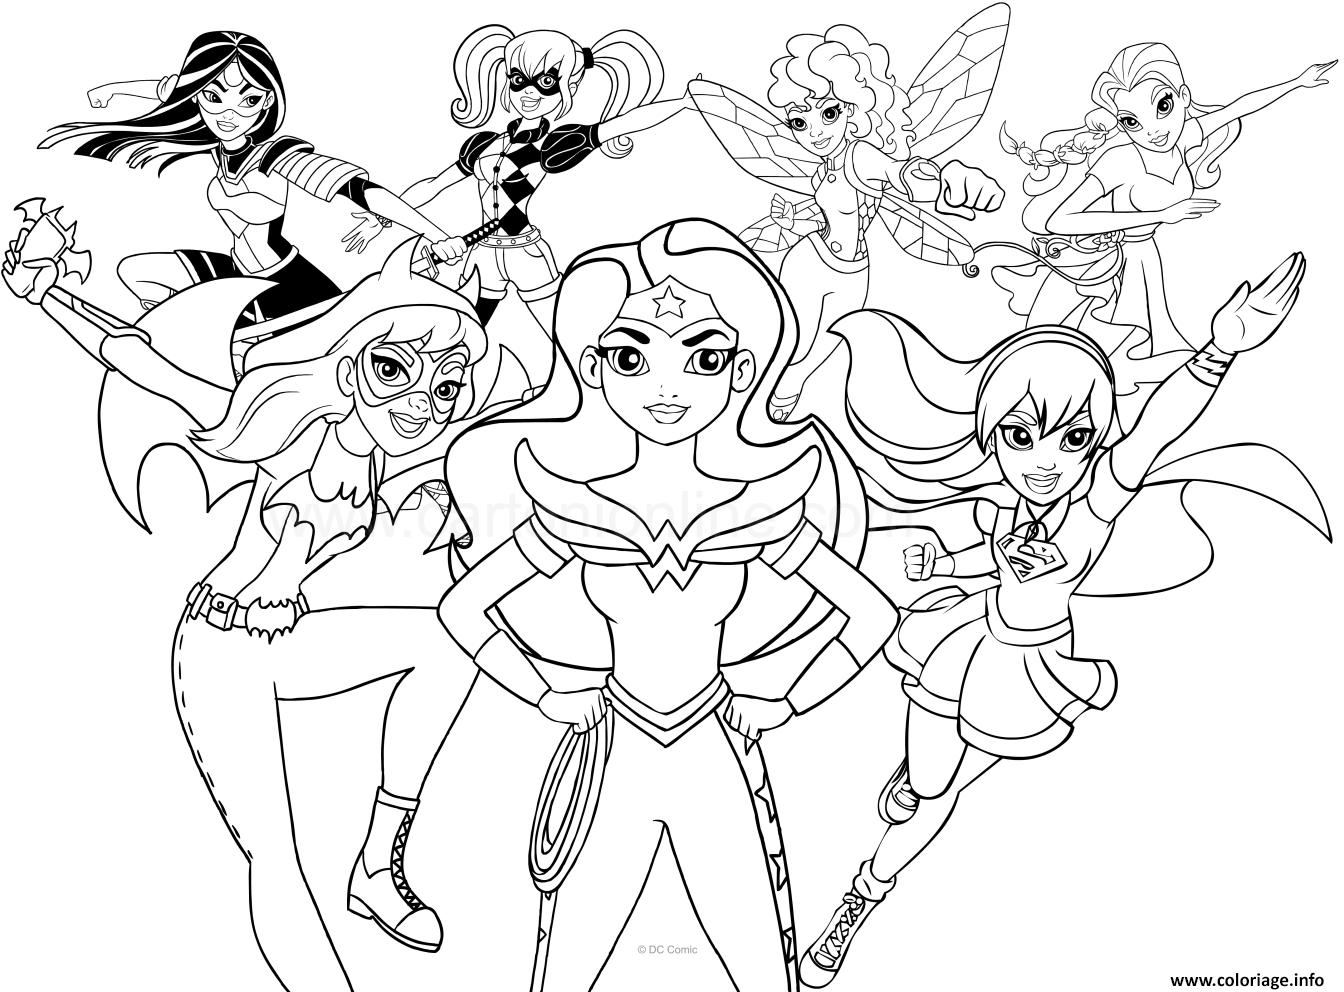 Coloriage dc superhero girls dessin - Dessin de super heros ...